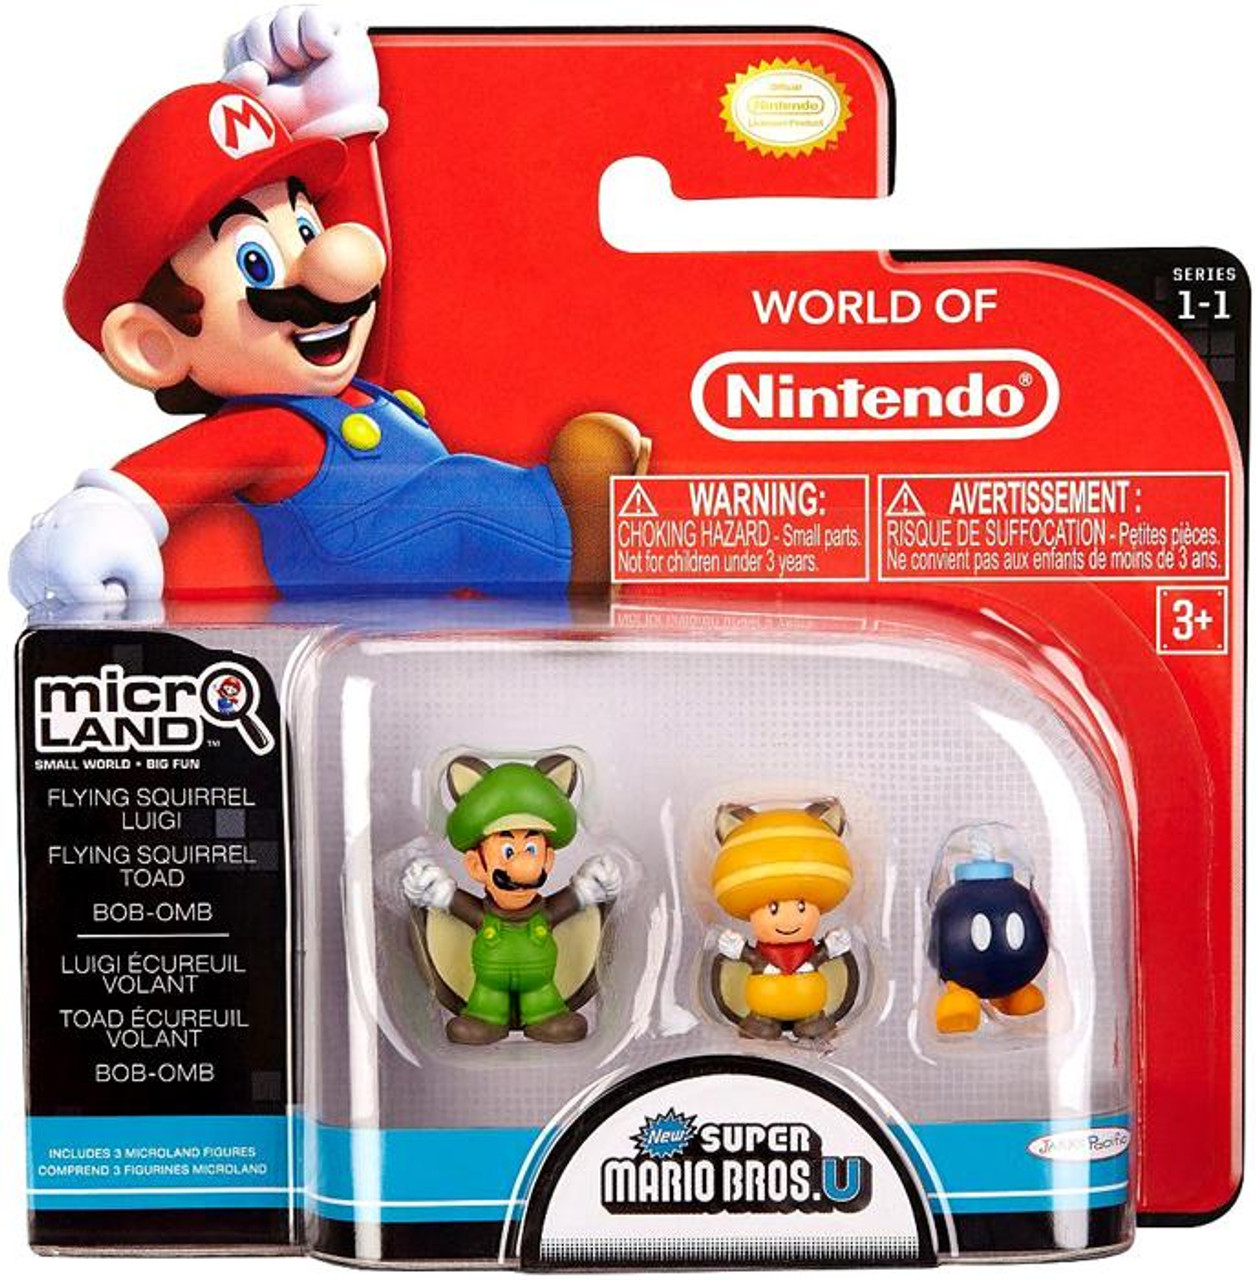 World Of Nintendo New Super Mario Bros U Micro Land Series 1 Flying Squirrel Luigi Flying Squirrel Toad Bob Omb Mini Figure 3 Pack